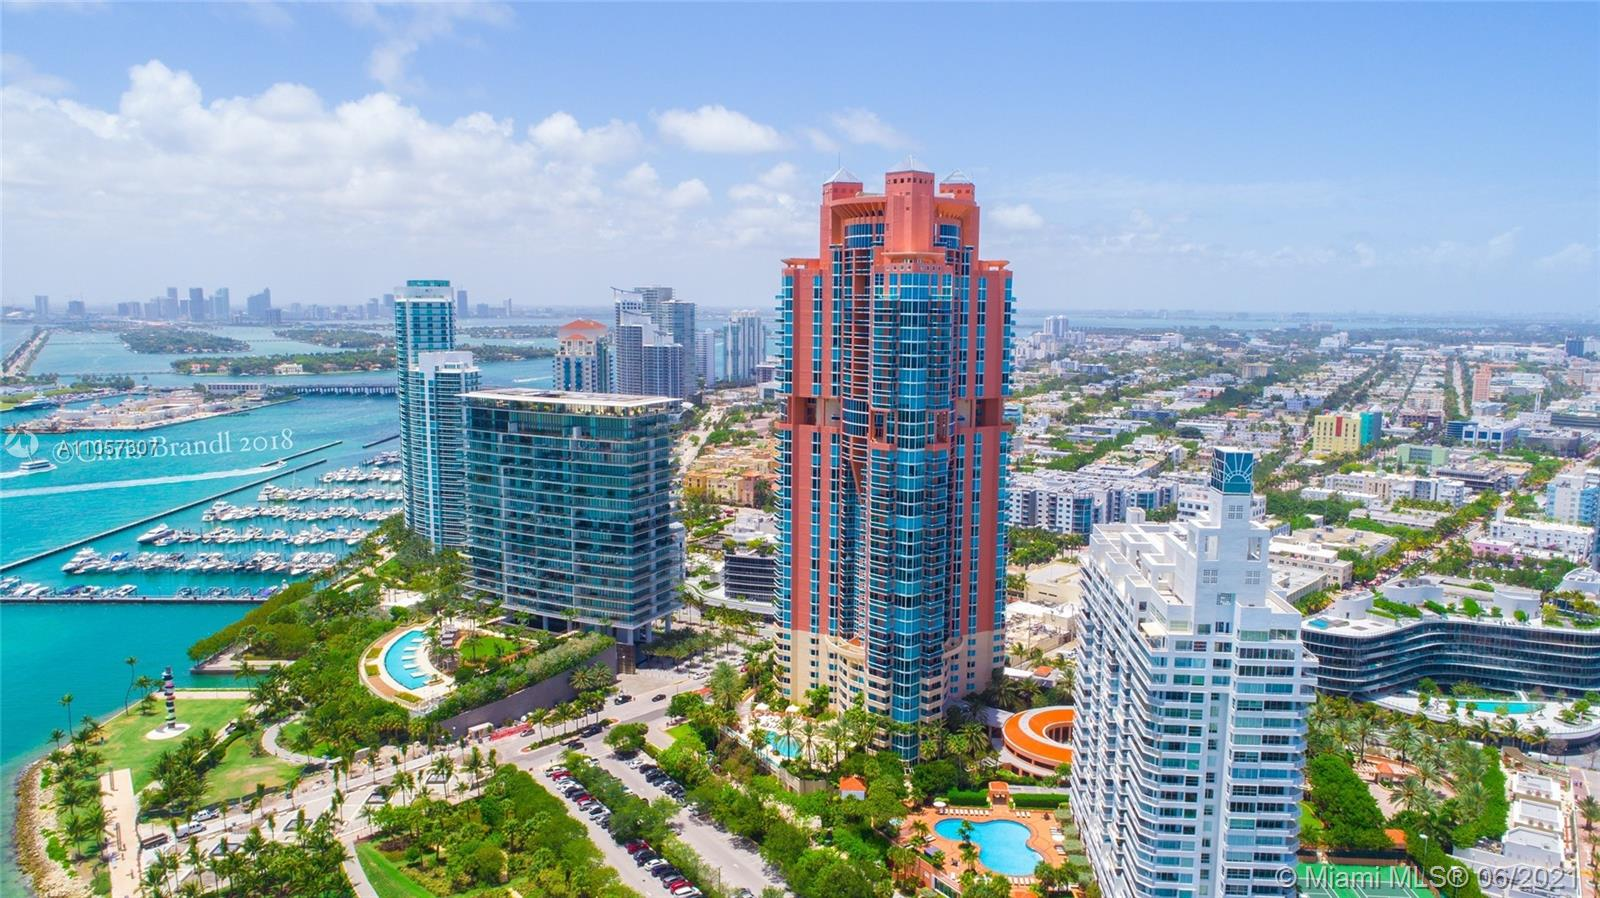 Beautiful remodeled three bedroom at the exclusive Portofino Tower located in the ultra-chic (SOFI) area of South Beach. Enjoy views of the Ocean, Miami Beach, and Government Cut. This 3 bed 2.5 bath (2,340s/f) unit has been completely remodeled and offers two private balconies. This full service luxury building offers 24hr security, valet, concierge, world class fitness center & spa, pool and tennis.